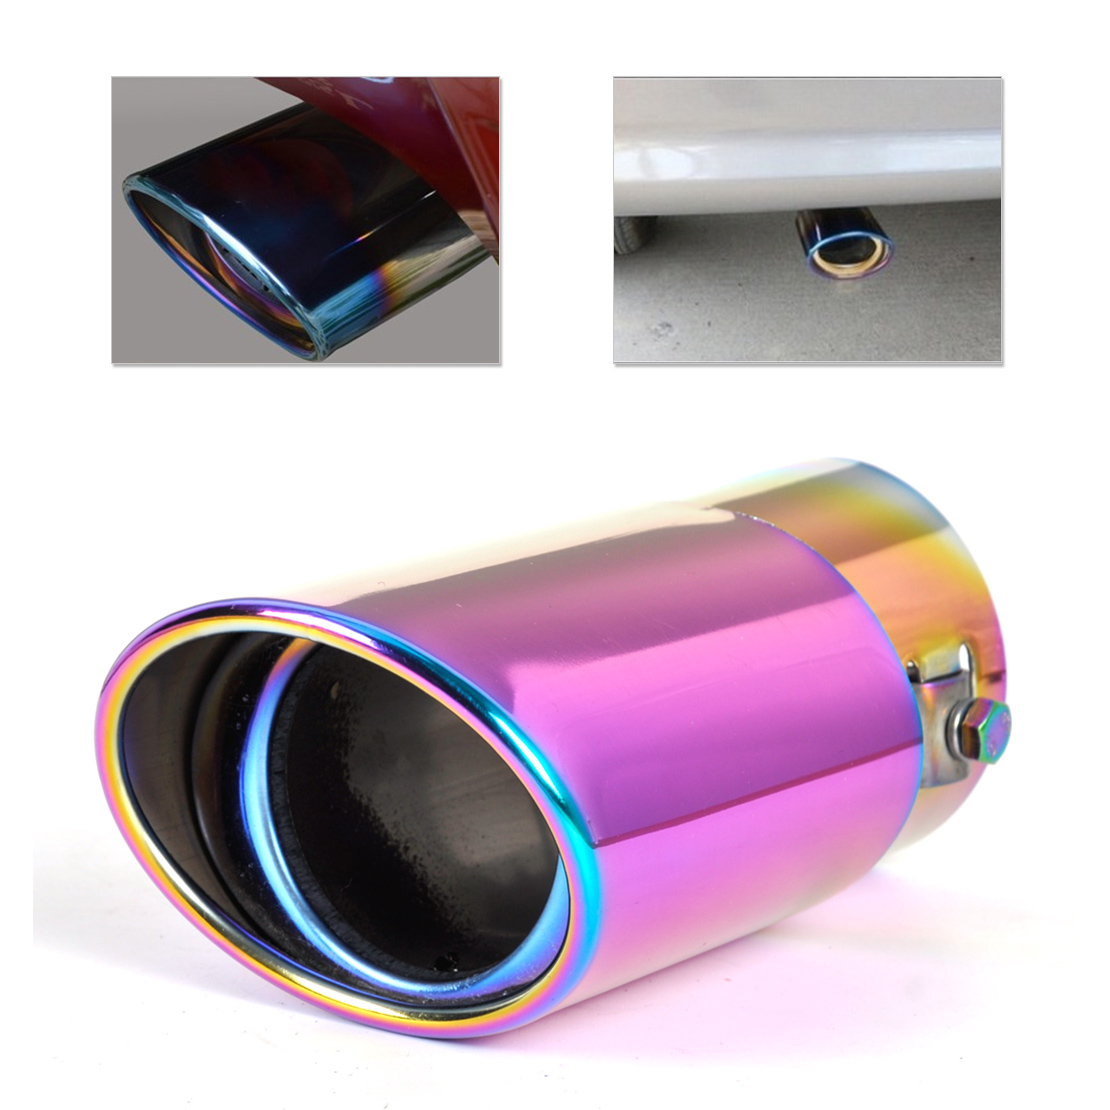 CITALL Straight Exhaust Tailpipe Tail Pipe Rear Muffler End Trim For Honda Civic Hyundai Sonata <font><b>Subaru</b></font> Forester Toyota Corolla image